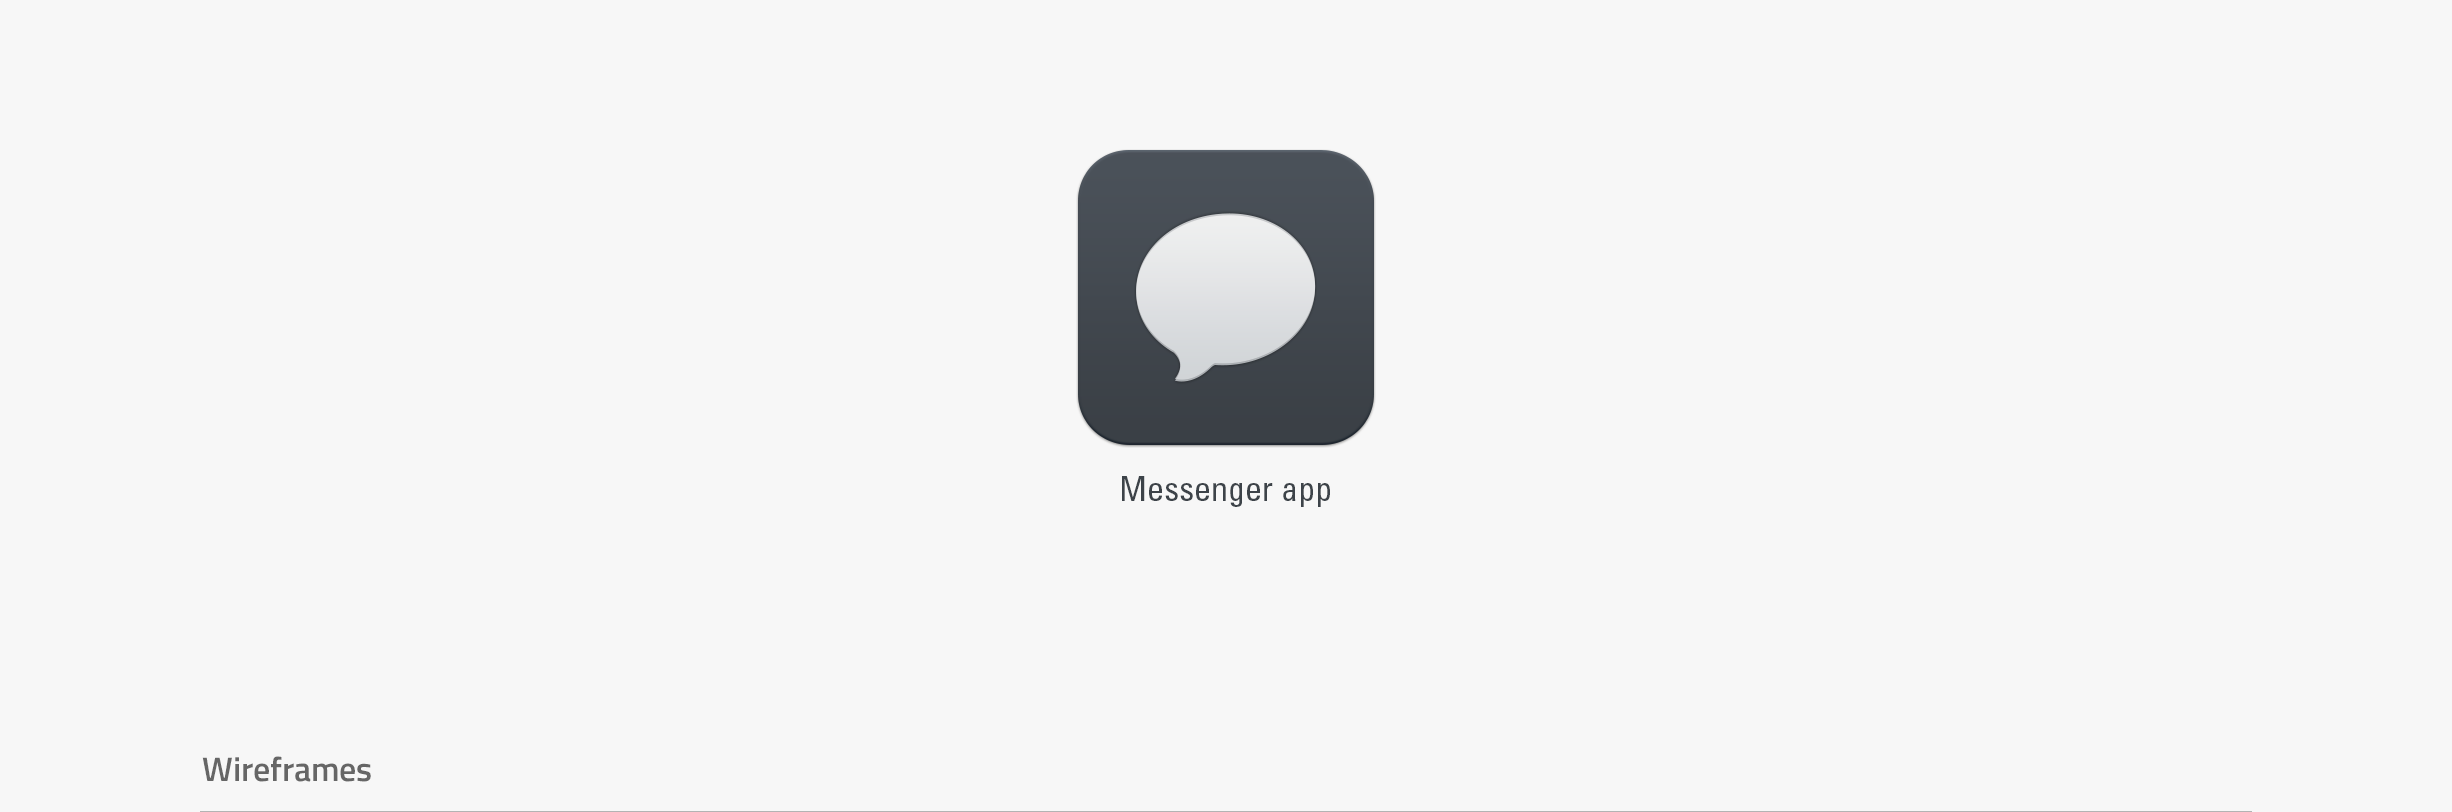 Messenger app - app icon